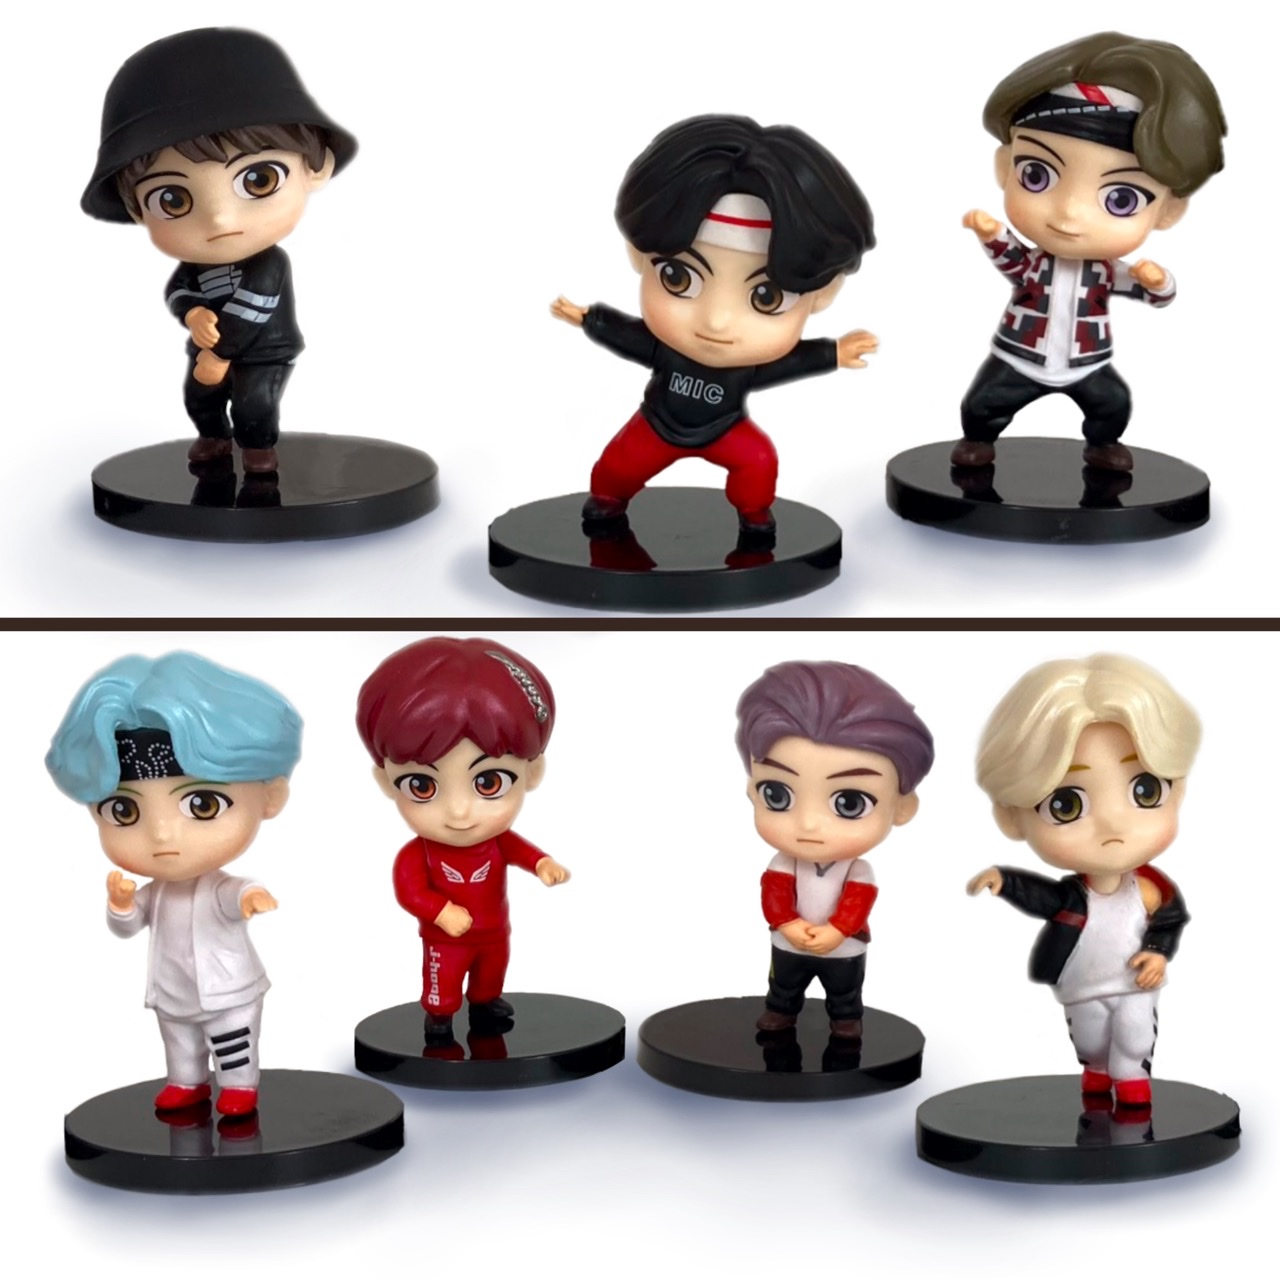 BTS Figures Each Sold Separately